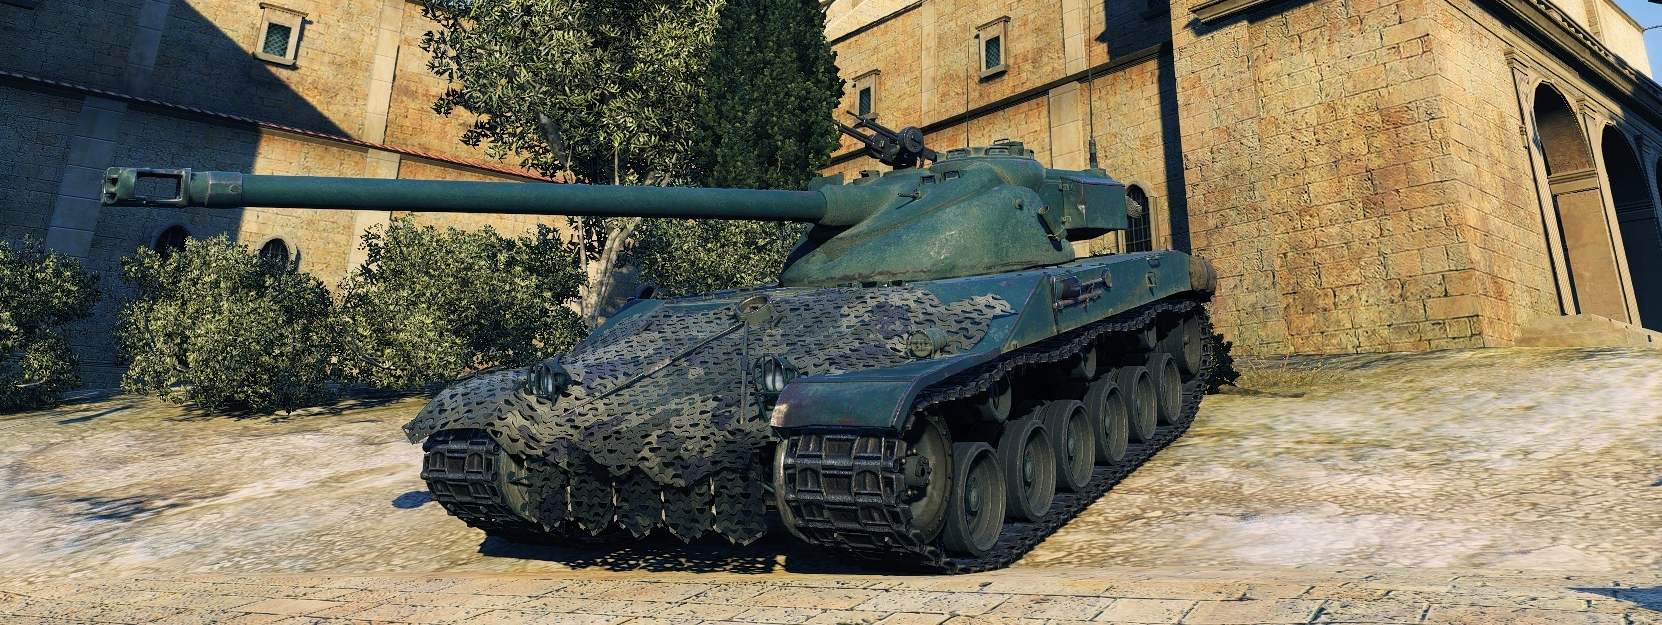 world of tanks girls und panzer amx 12 t mod